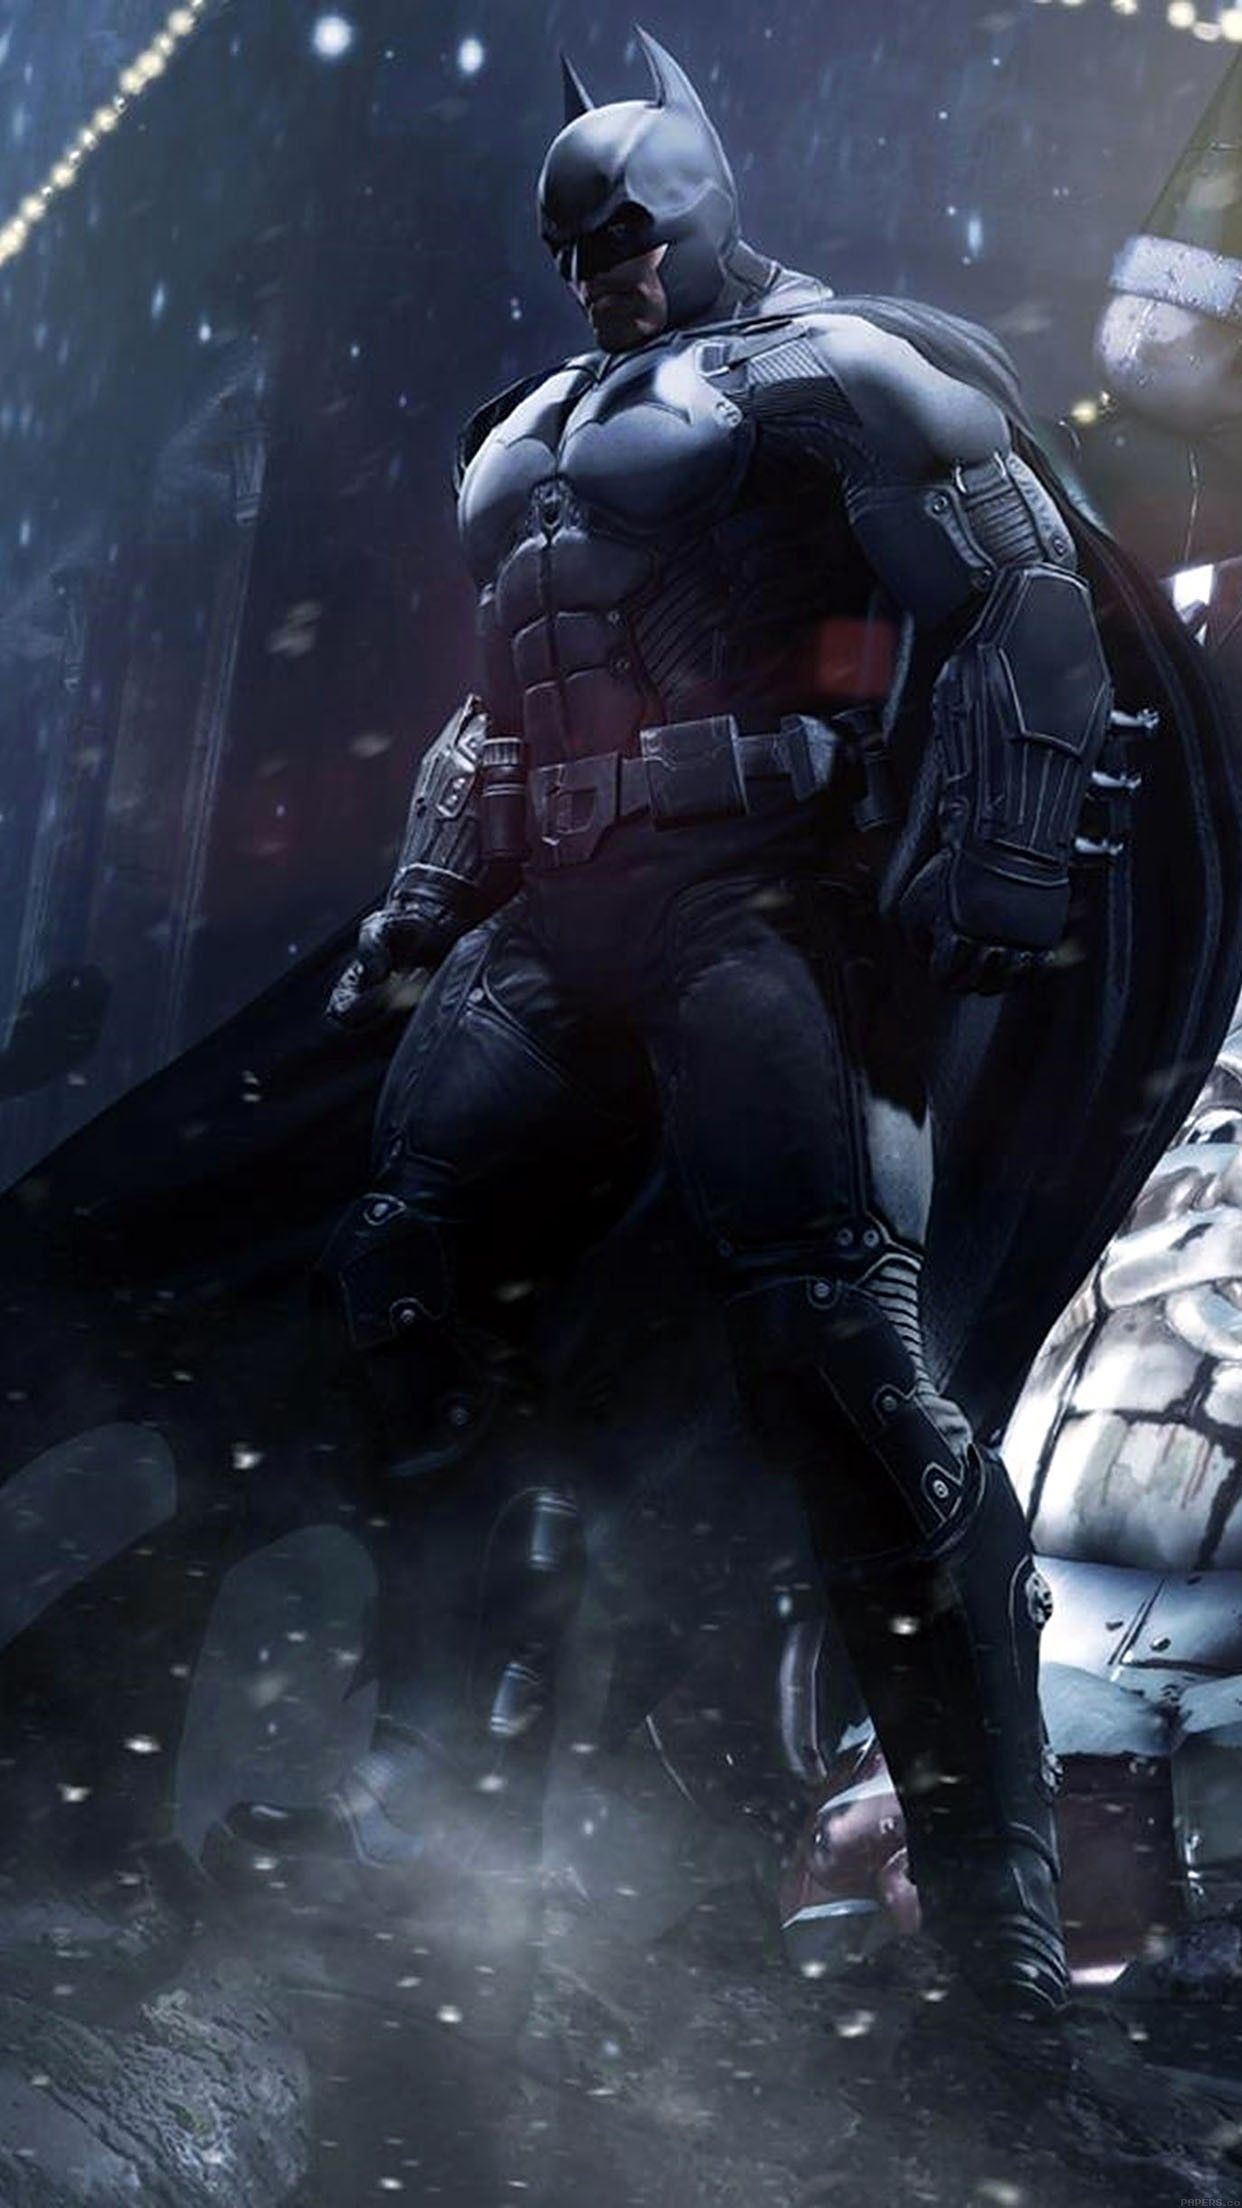 Batman Iphone Wallpaper Hd Batman Pictures Batman Arkham